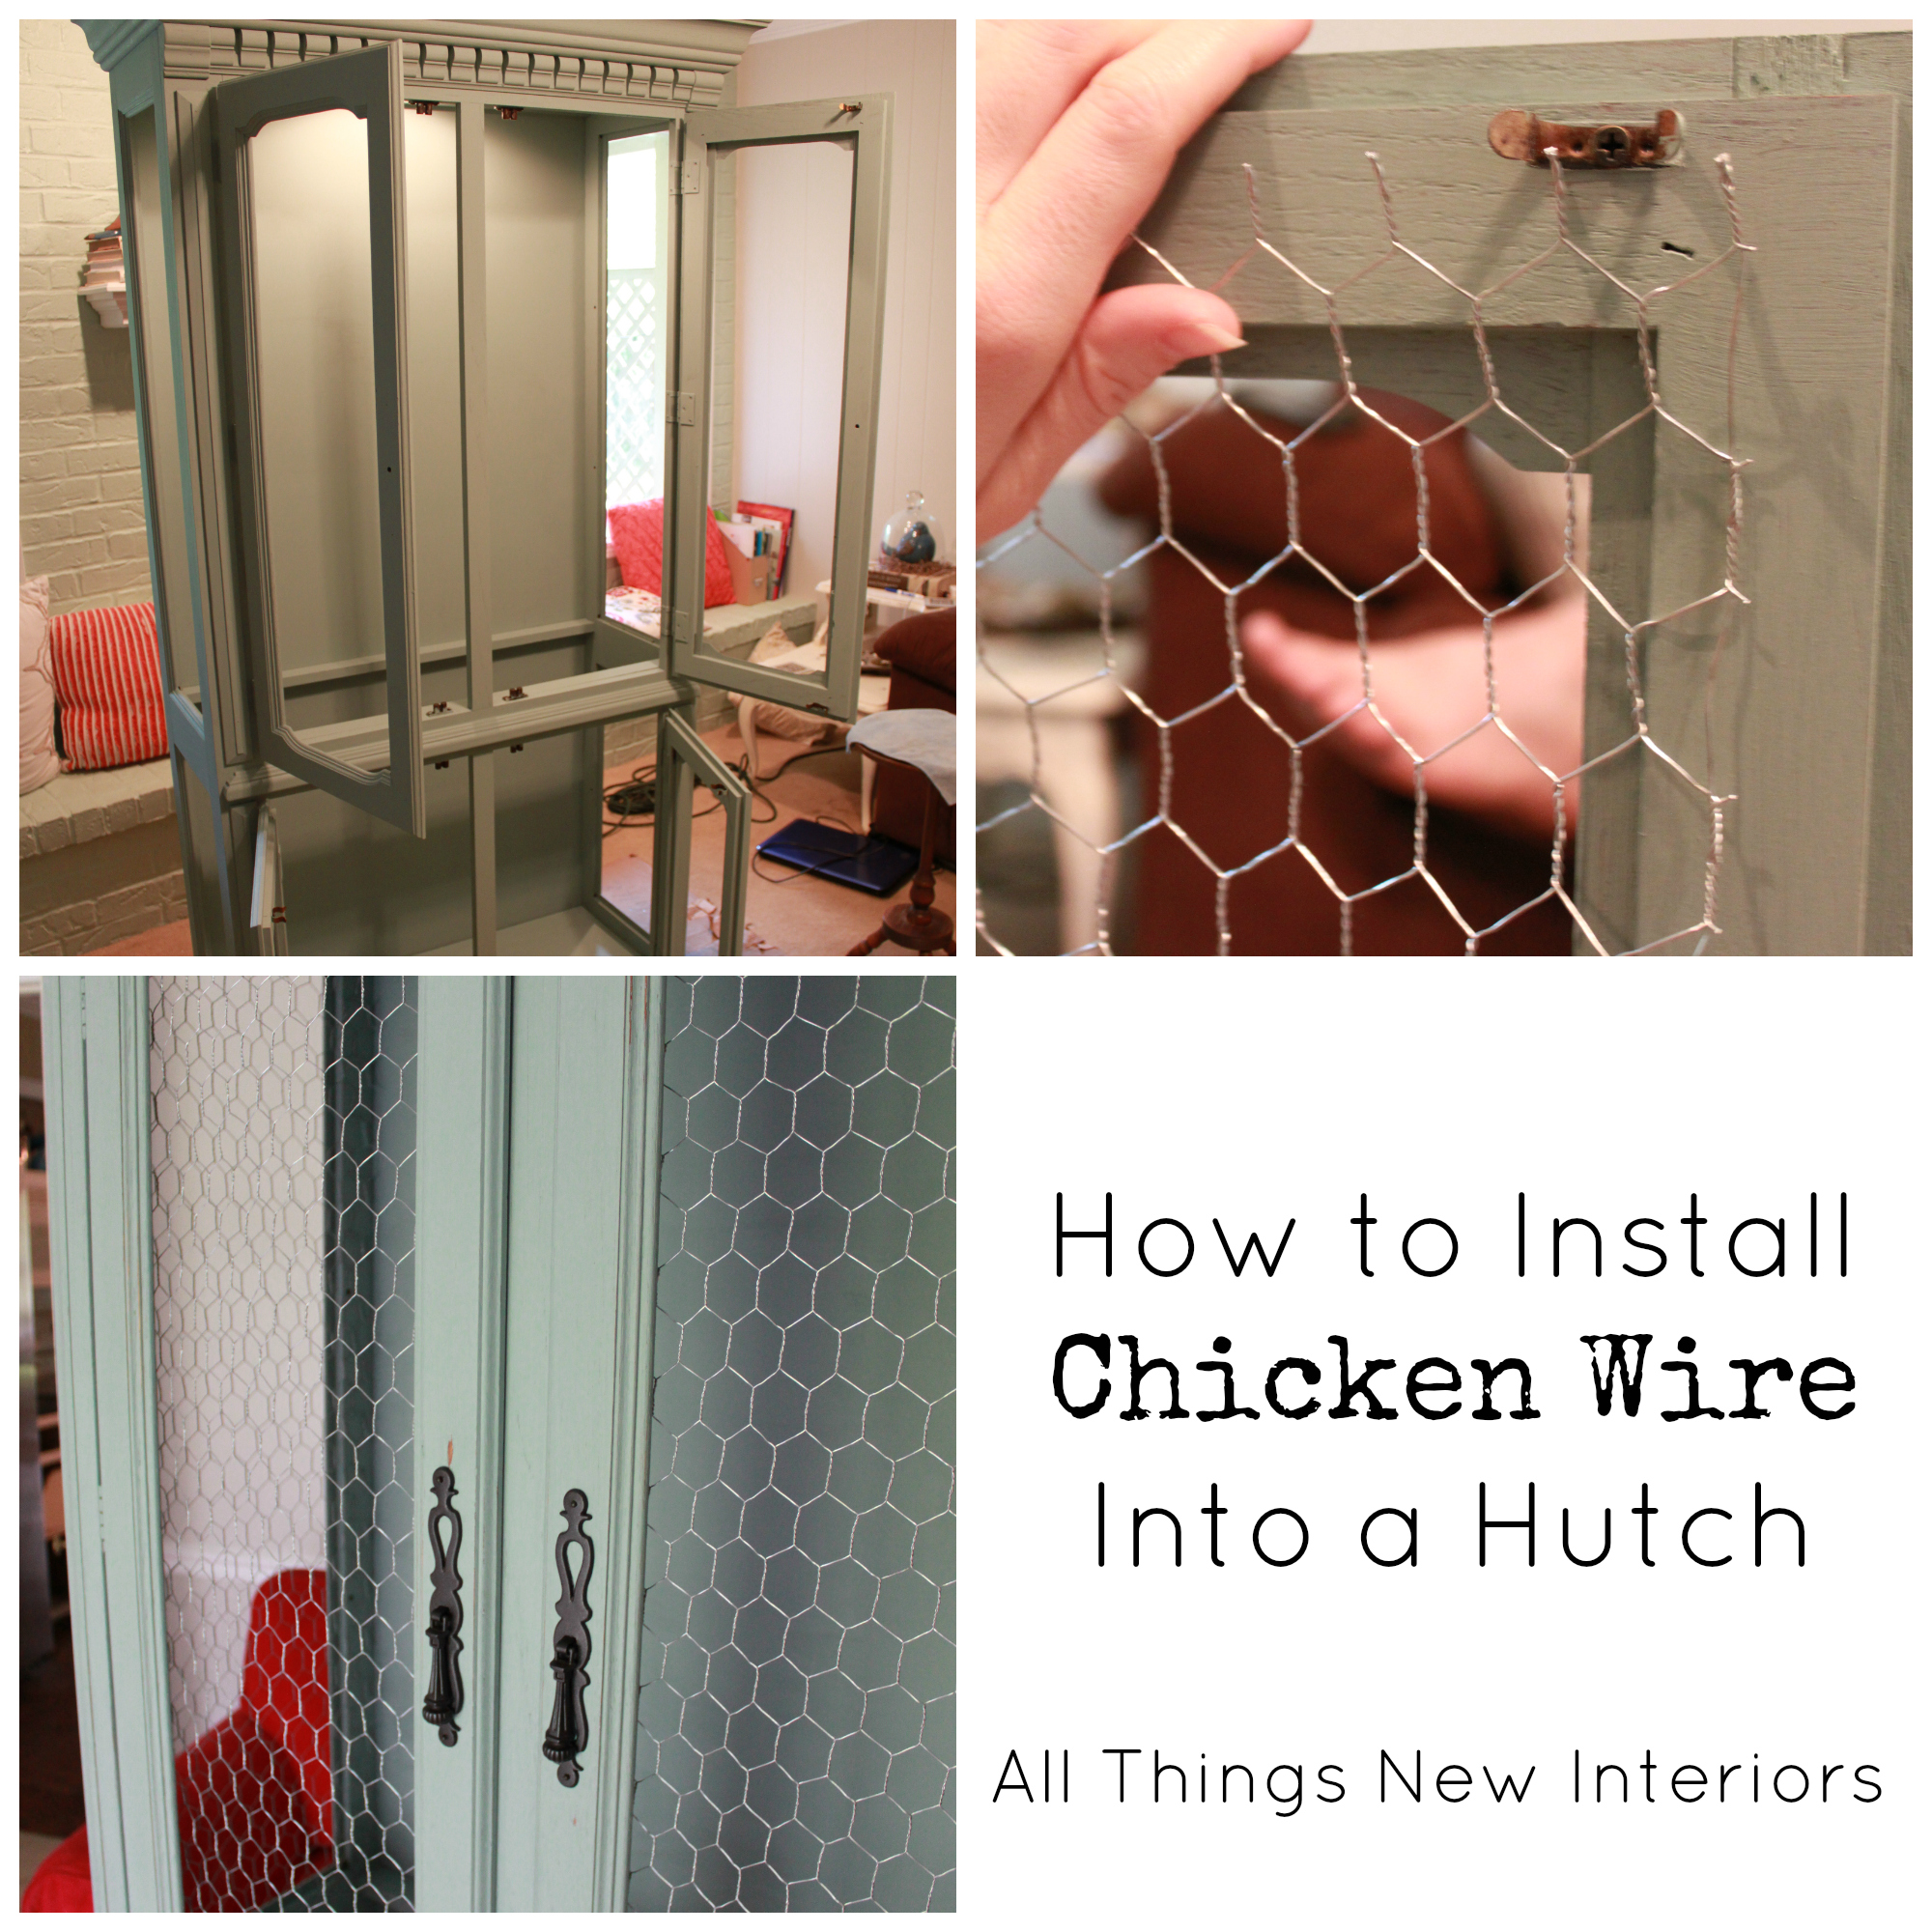 How to Install Chicken Wire Into a Hutch | All Things New Interiors